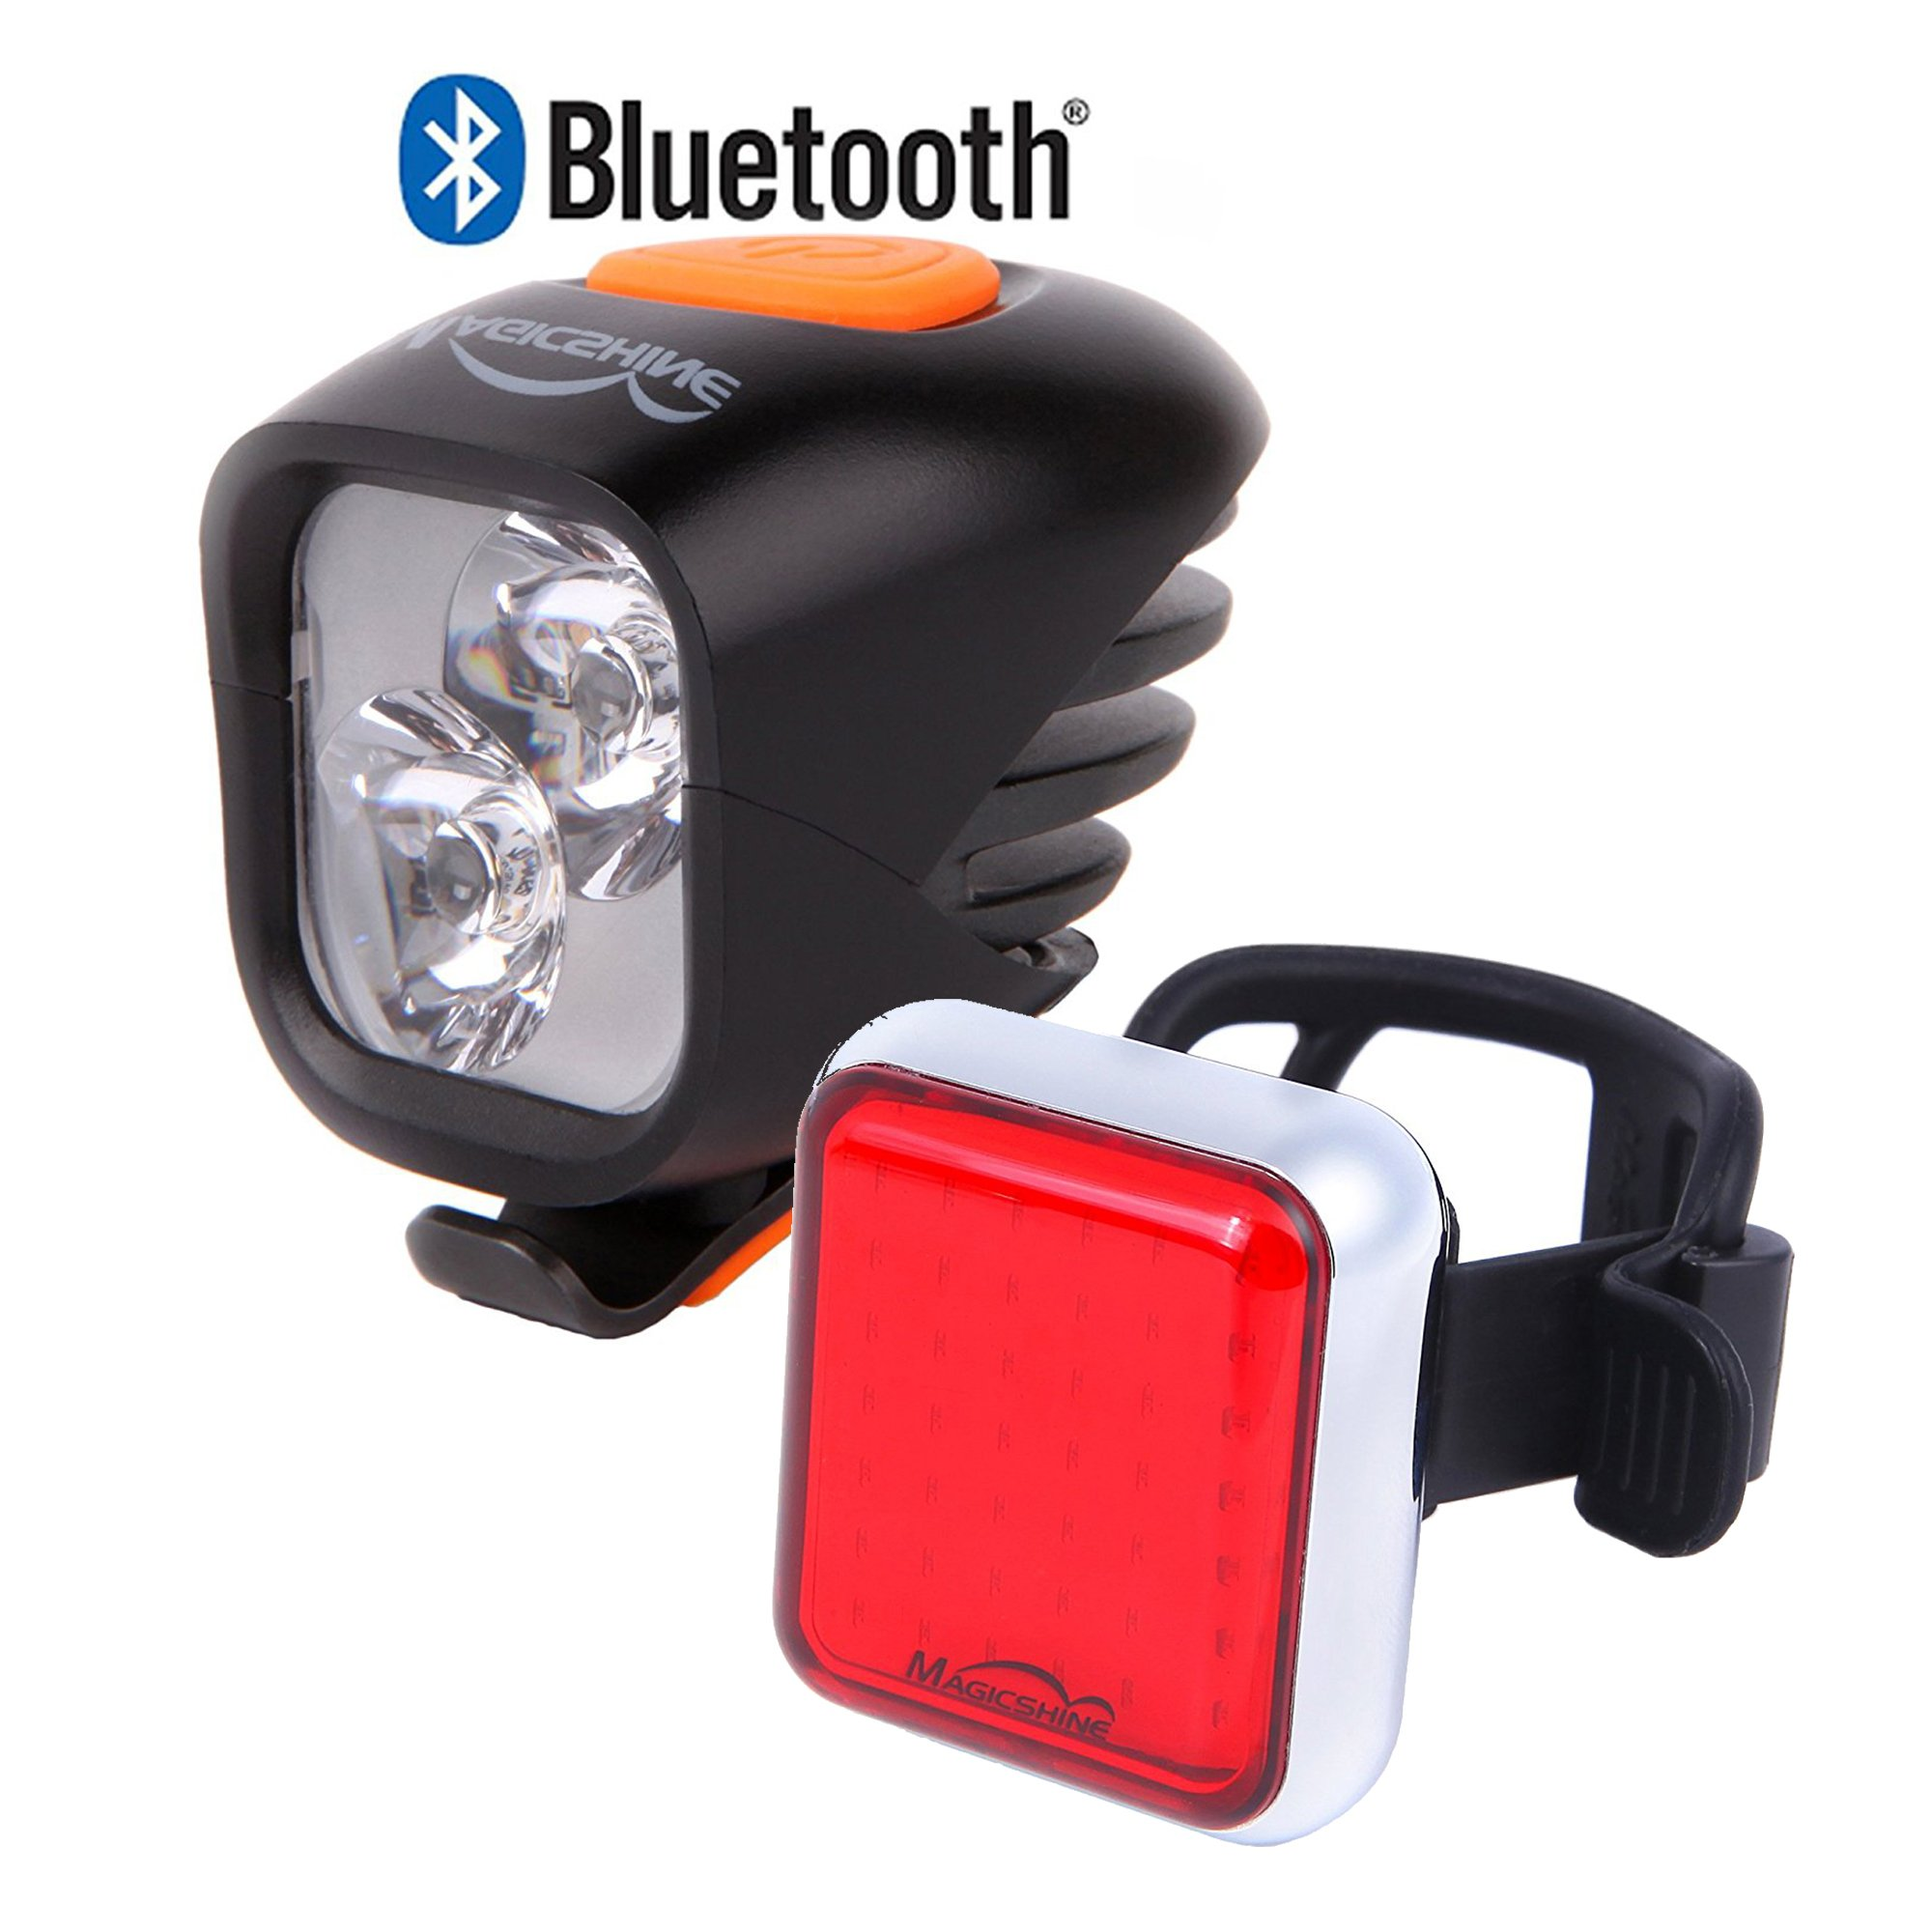 Magicshine Road bike light combo, commuter bike headlight and taillight set, warning light, safety light for urban and city cyclists, portable and convenient (Road Set) by Magicshine (Image #1)